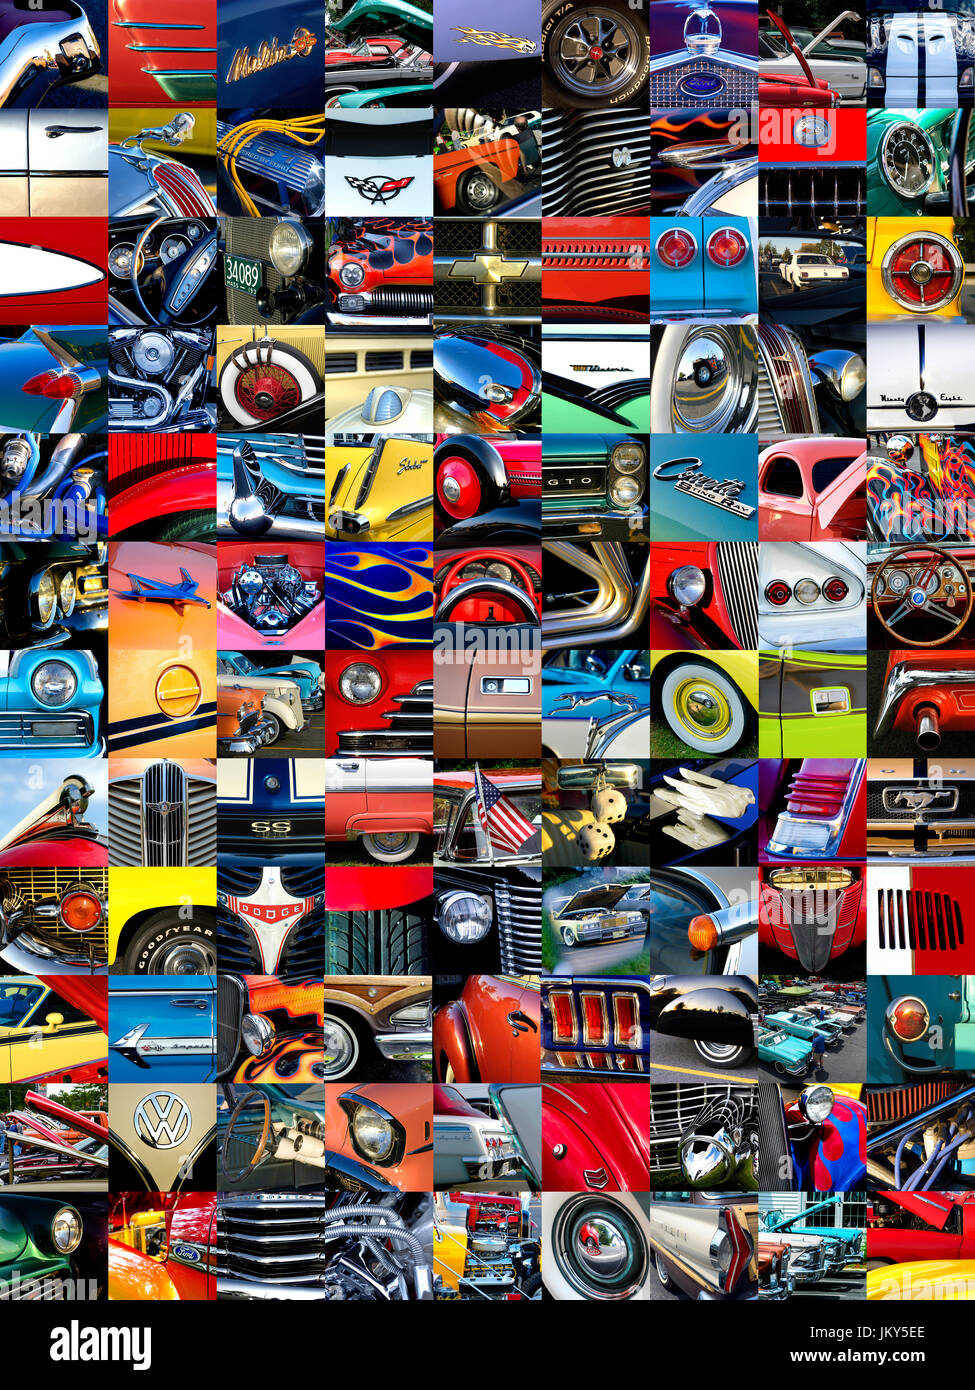 A mosaic of individual photos of cars and car parts accumulated over years of car shows and cruise nights. - Stock Image